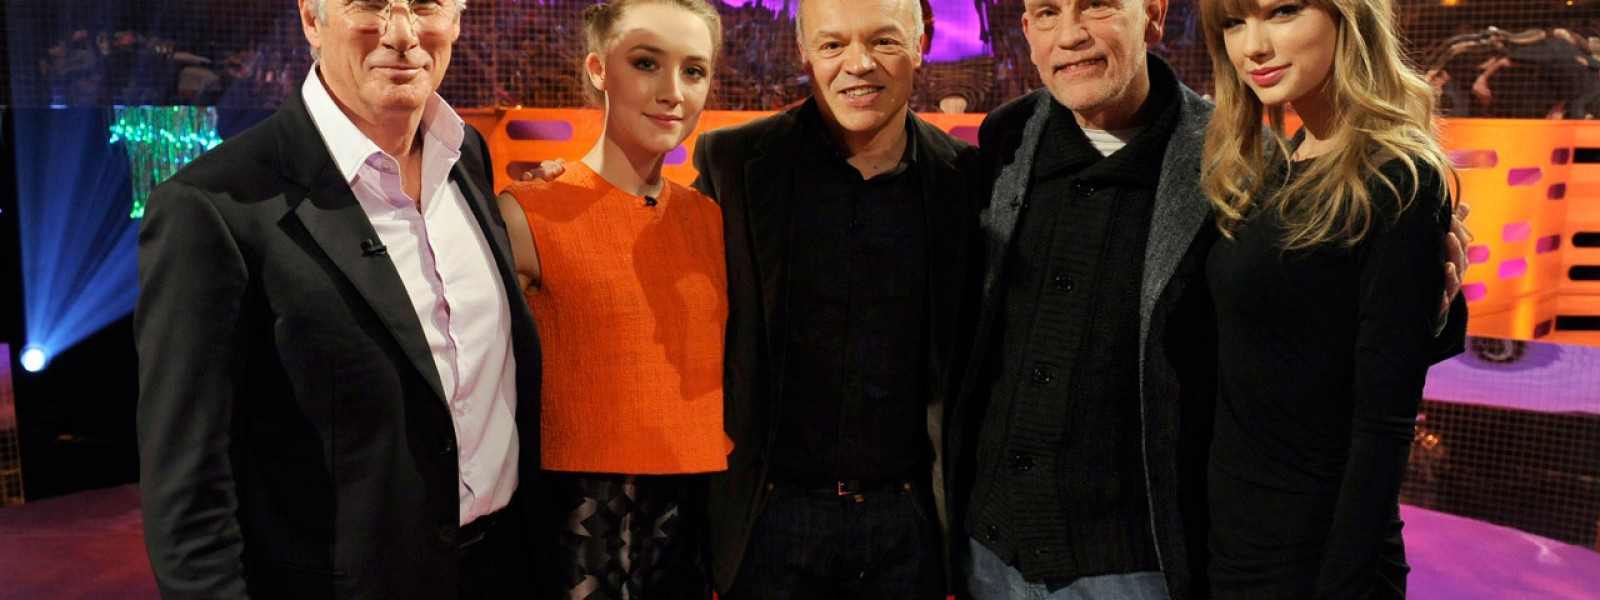 grahamnorton_photo_s12_e17_01